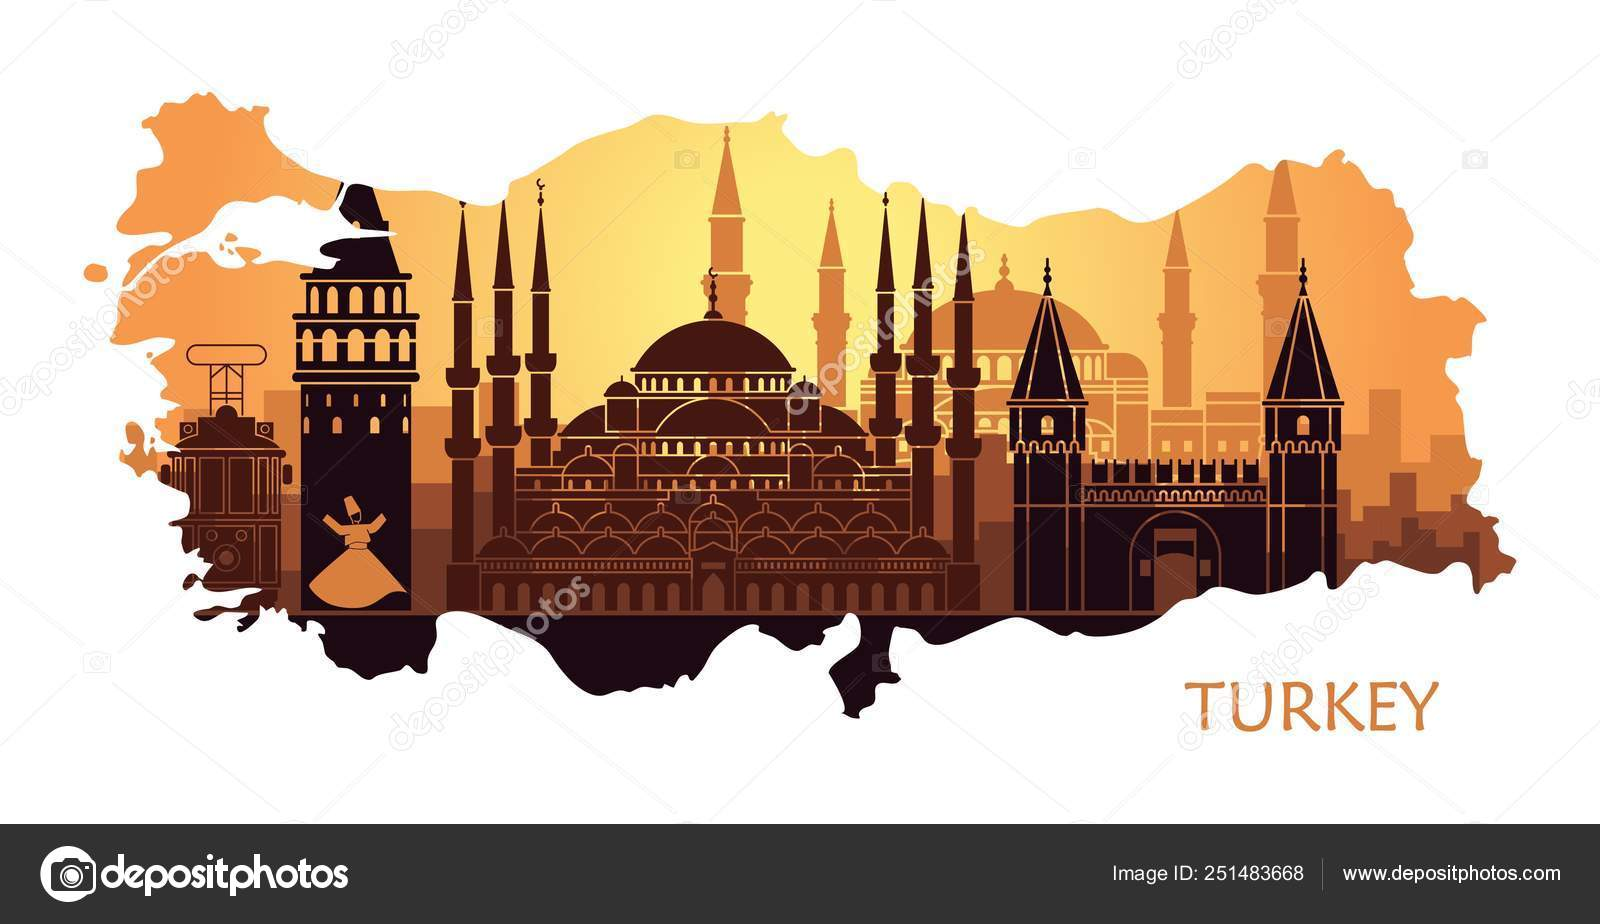 Abstract Landscape Of Istanbul With The Main Sights In The Form Of